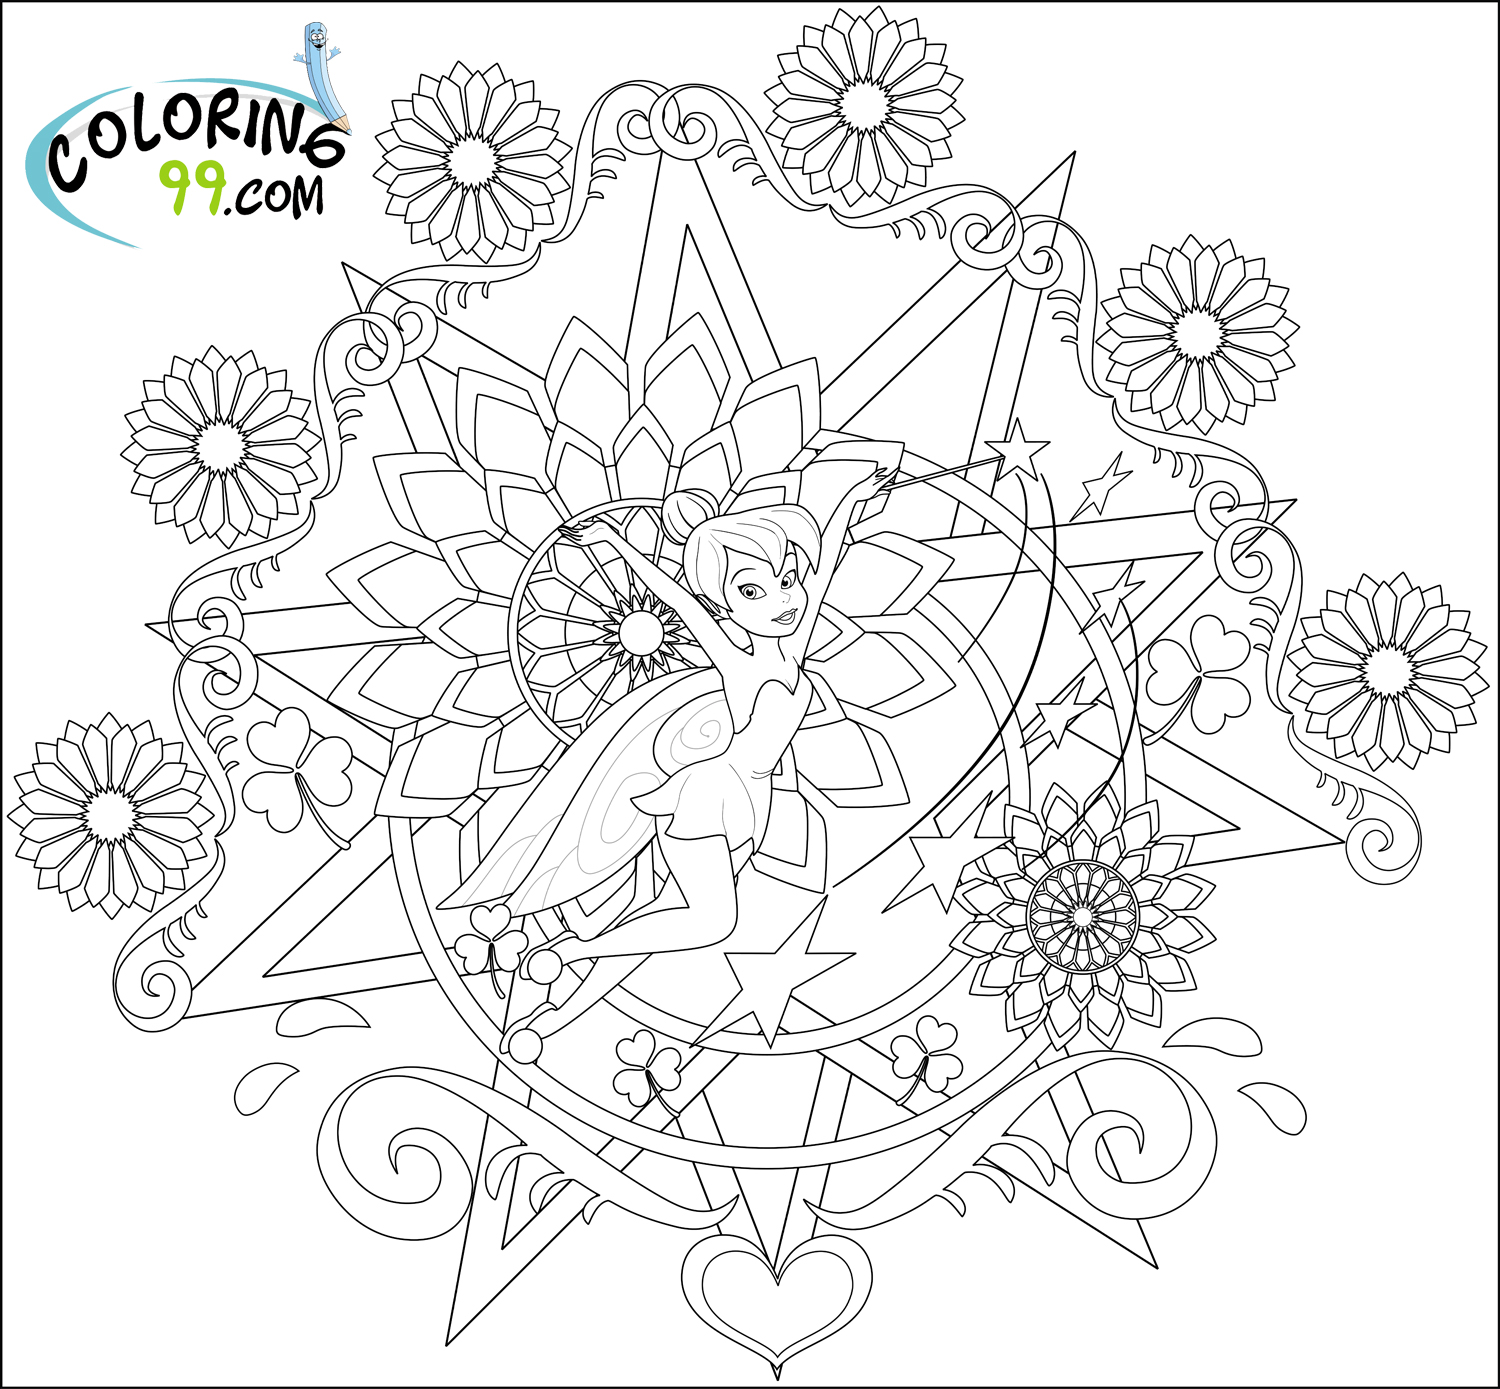 tinkerbell coloring coloring pages tinkerbell coloring pages and clip art tinkerbell coloring